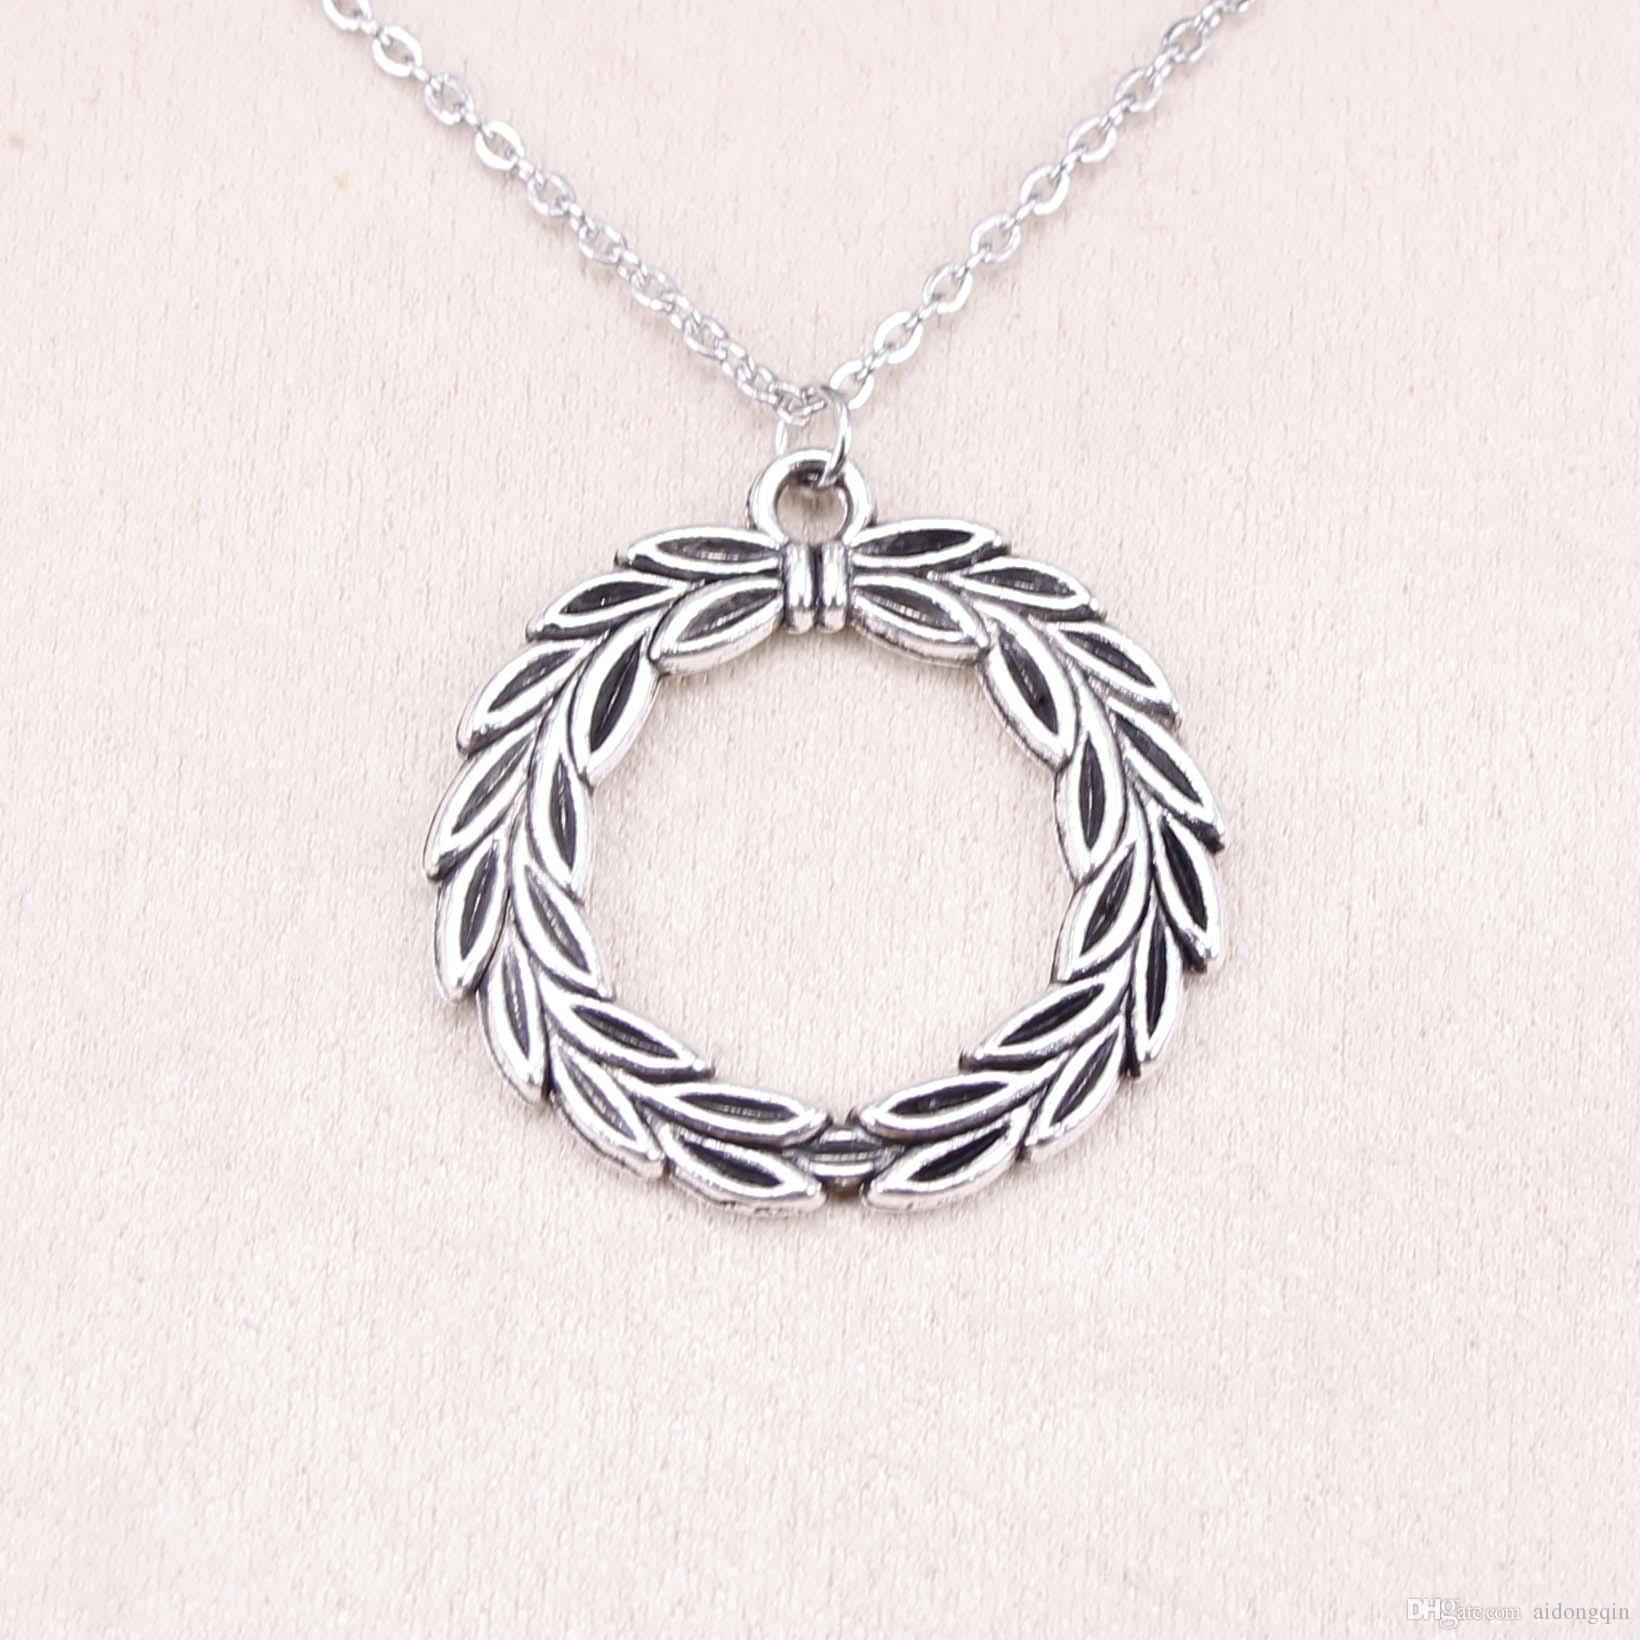 New Fashion Tibetan Silver Pendant olive branch laurel wreath 34mm Choker Charm Short Long DIY Necklace Factory Price Handmade Jewelry